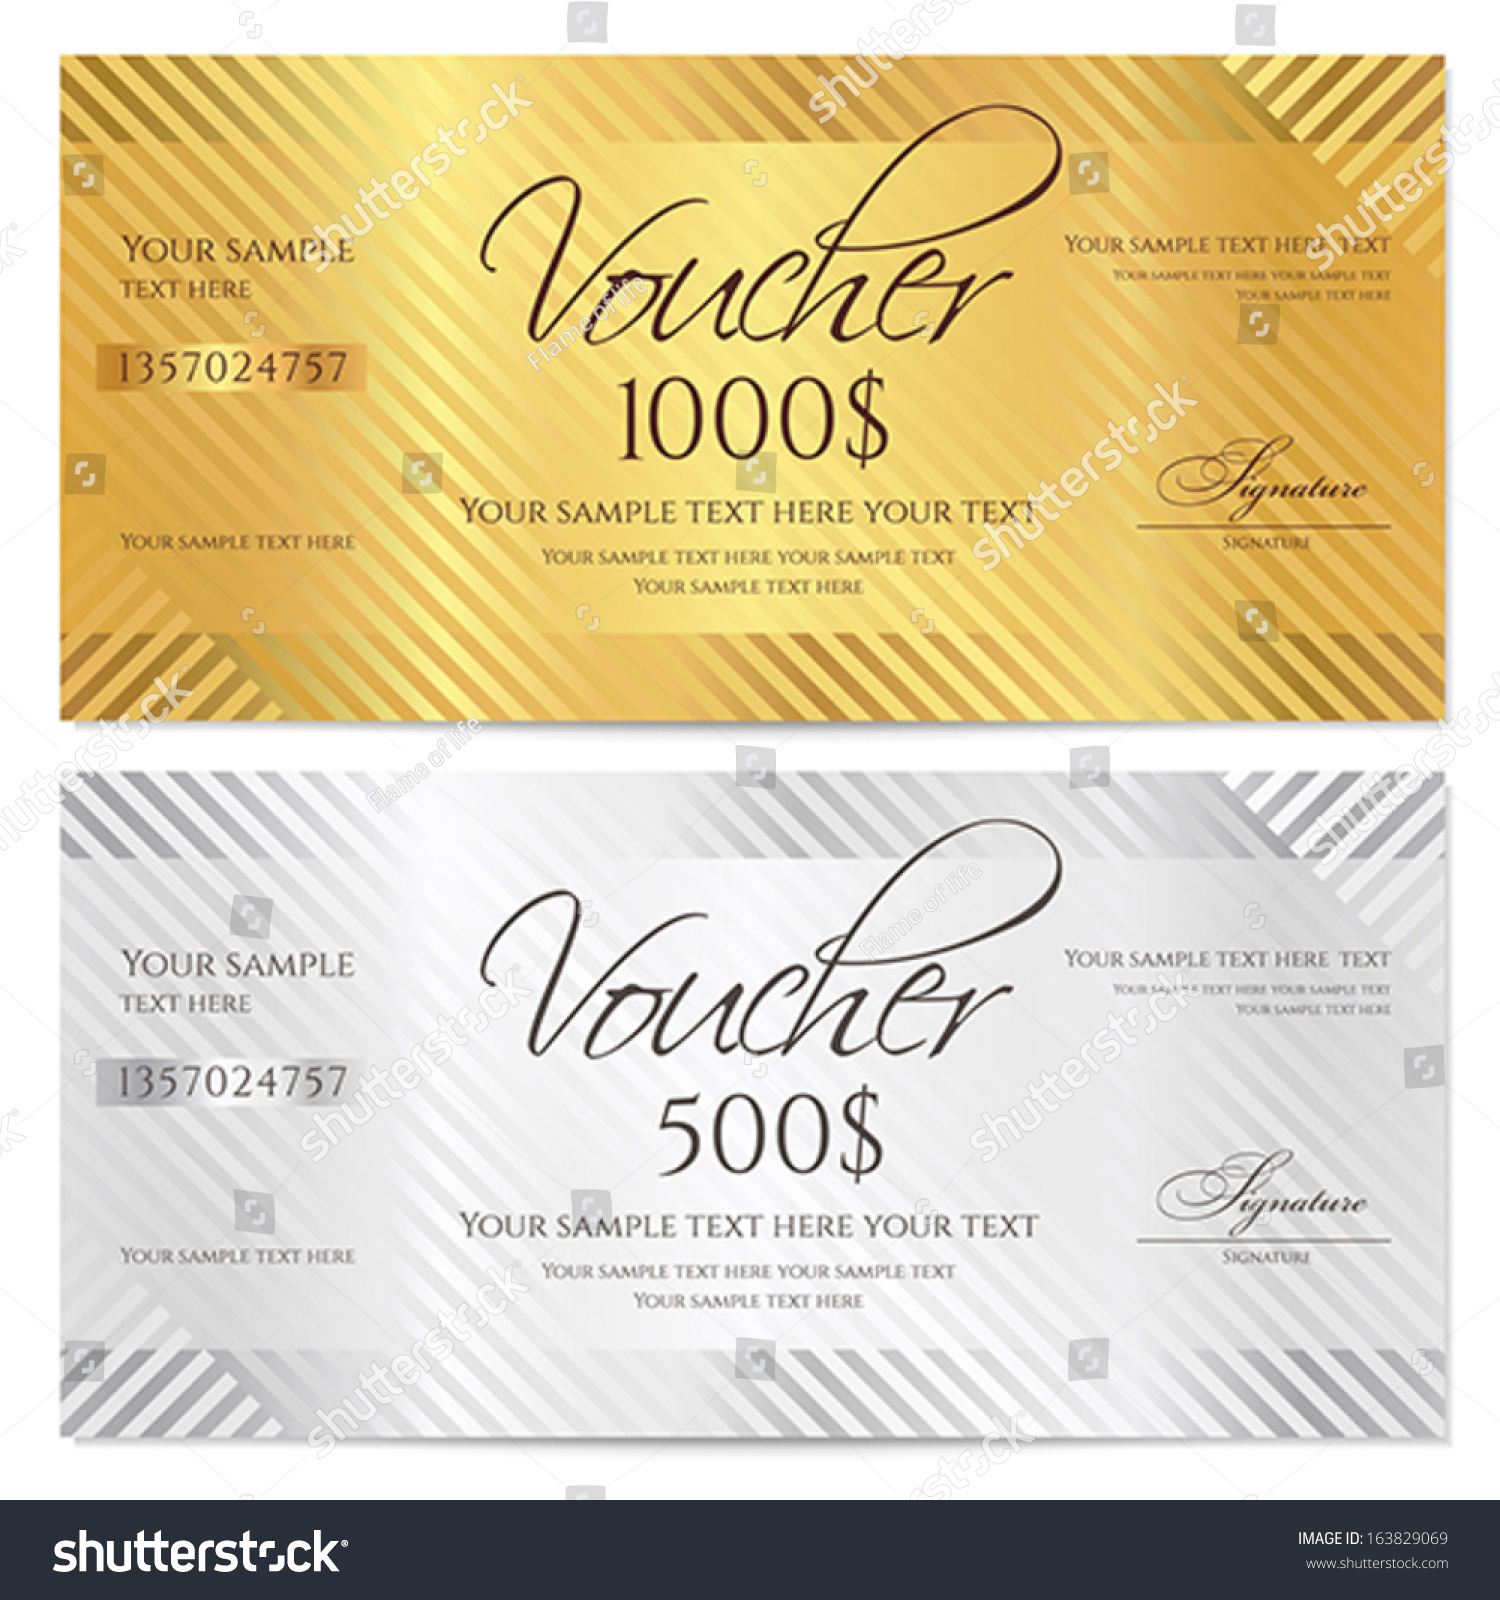 Royalty free voucher gift certificate coupon 163829069 stock voucher gift certificate coupon template with stripe pattern gold and silver background for money design currency note check cheque ticket reward yadclub Choice Image